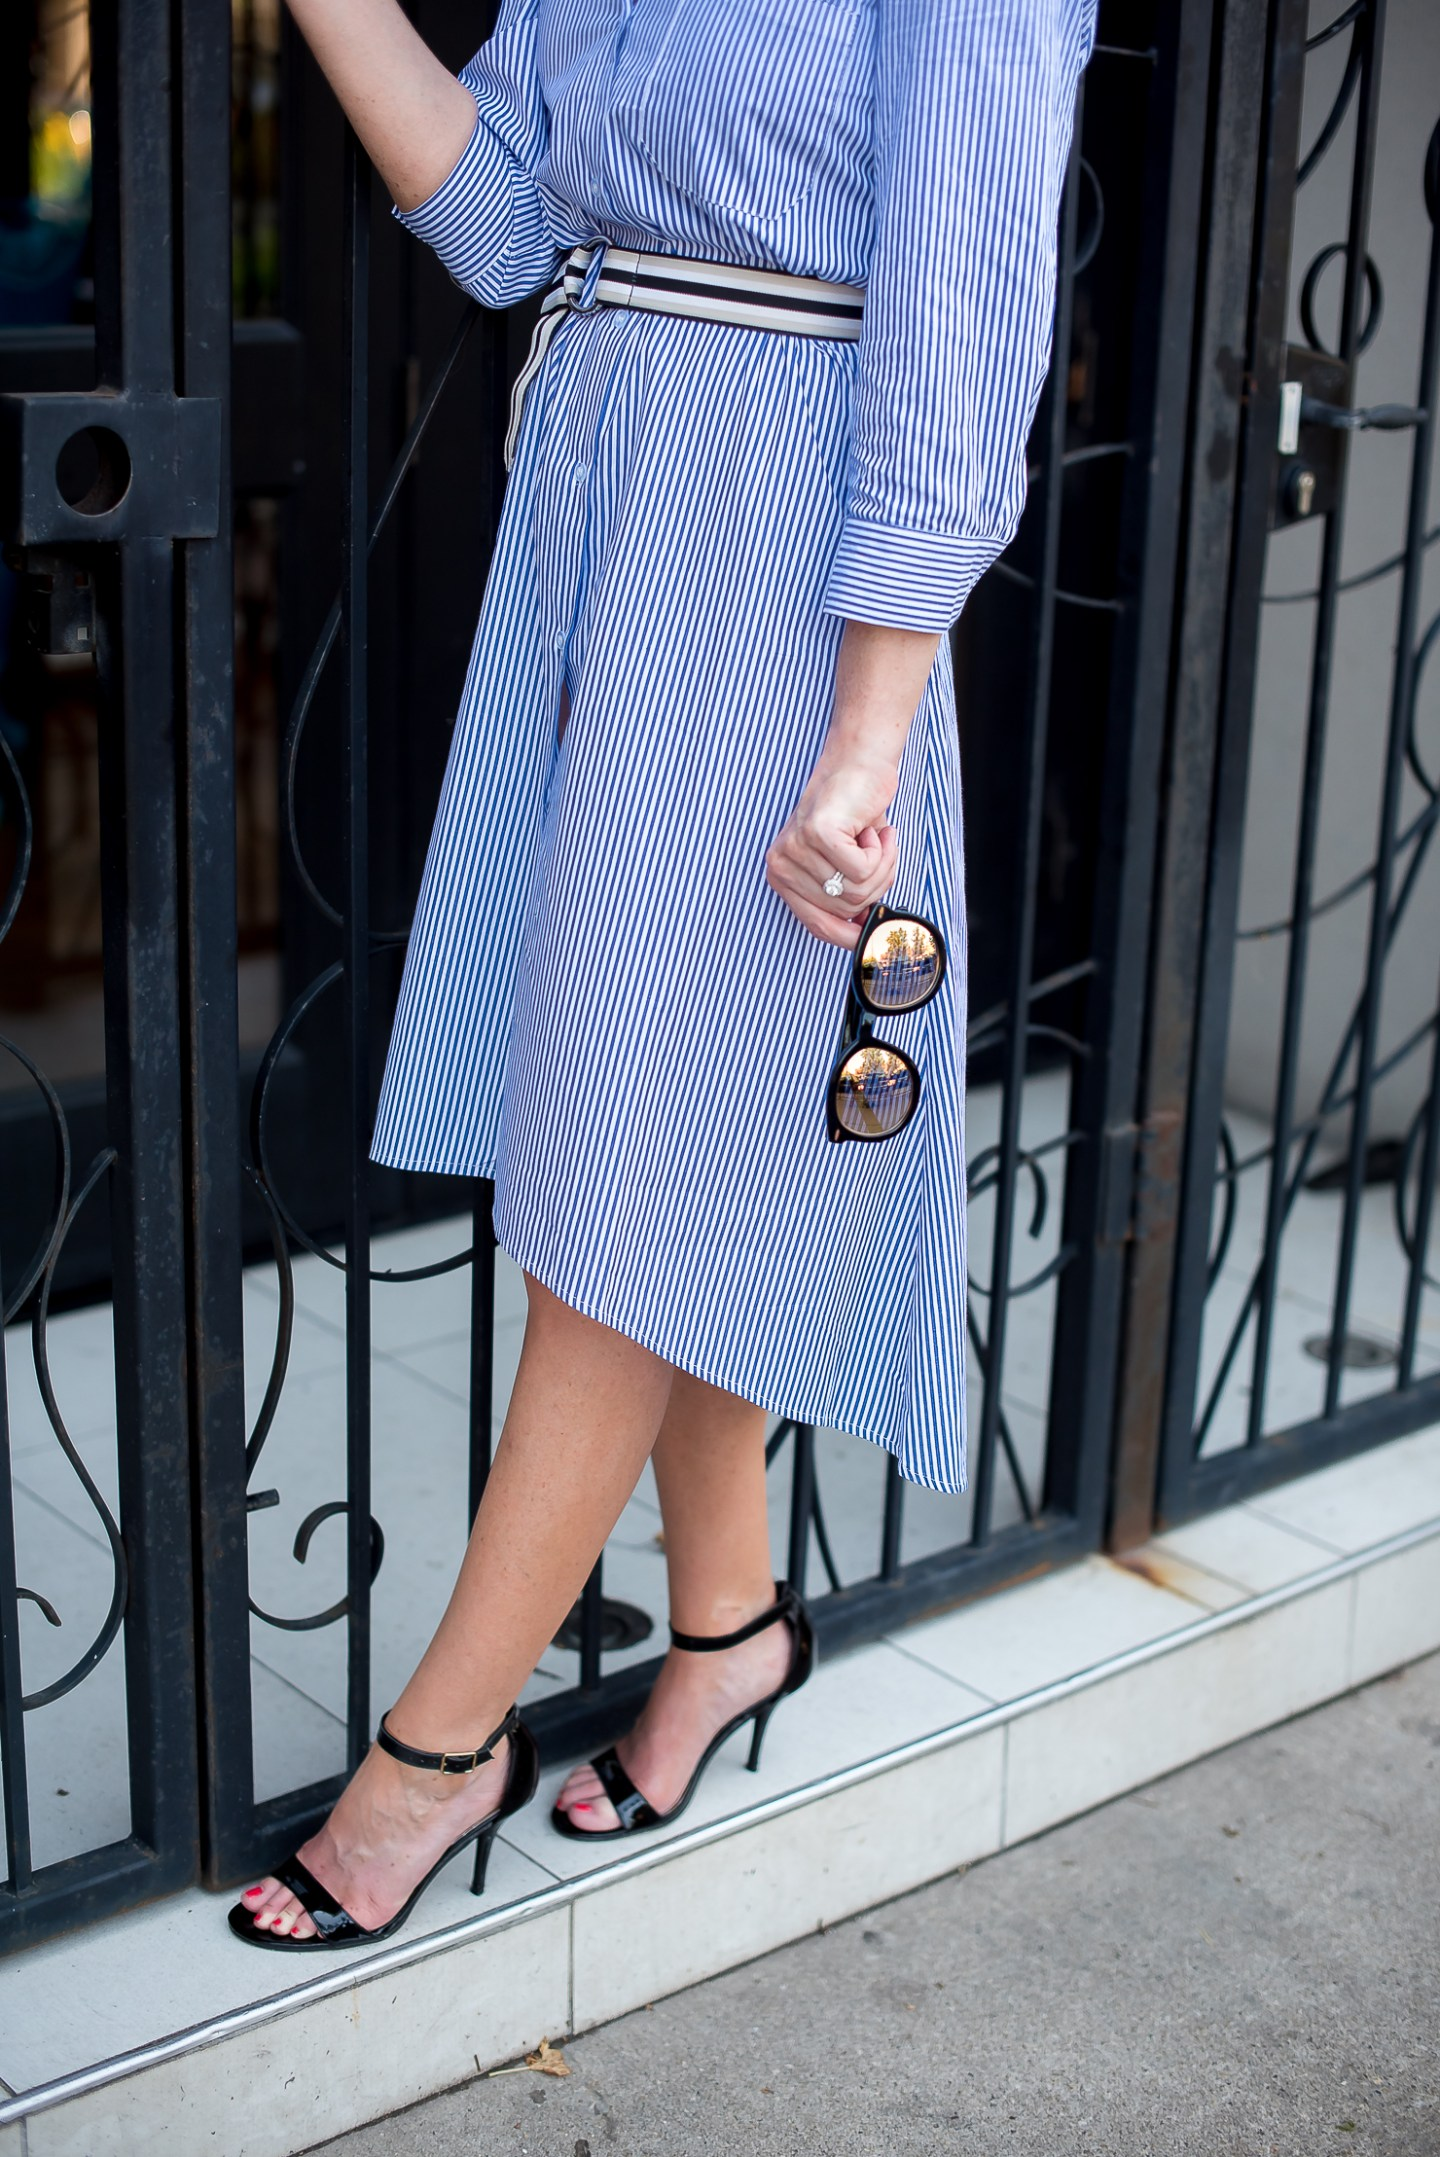 shein-blue-and-white-striped-shirtdress-french-cafe-iced-green-chai-tea-latte